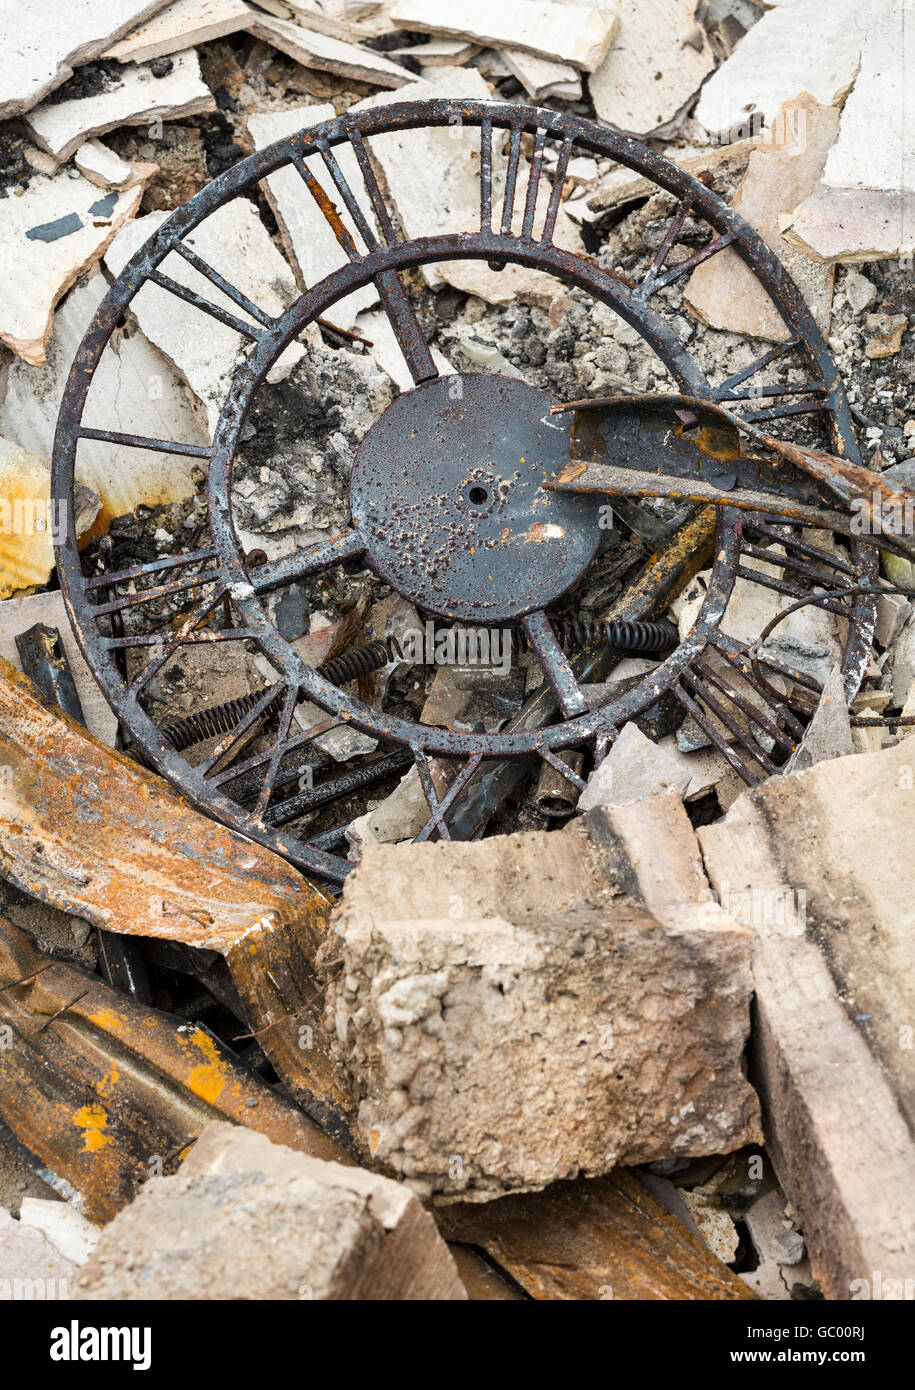 Destroyed personal property after a house fire. Clock in ruins of burned home after a natural disaster wildfire. - Stock Image